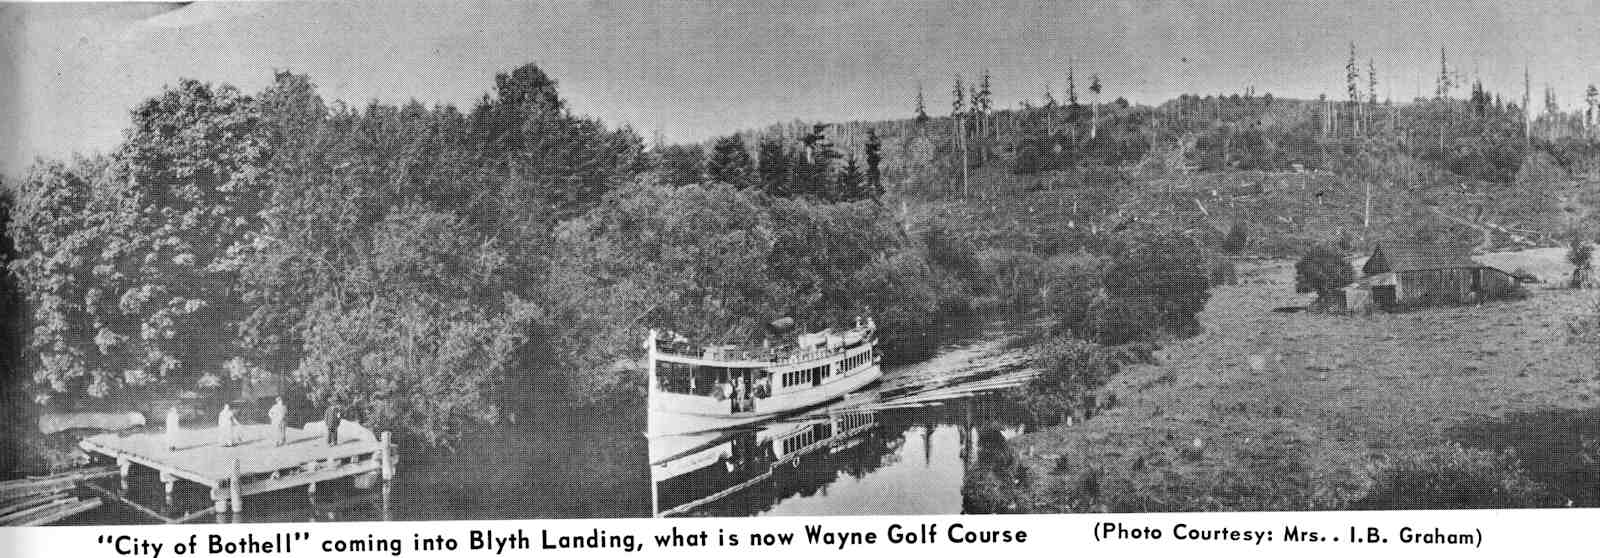 Ferry -City of Bothell- coming into Blyth Landing (now Wayne Golf Course)